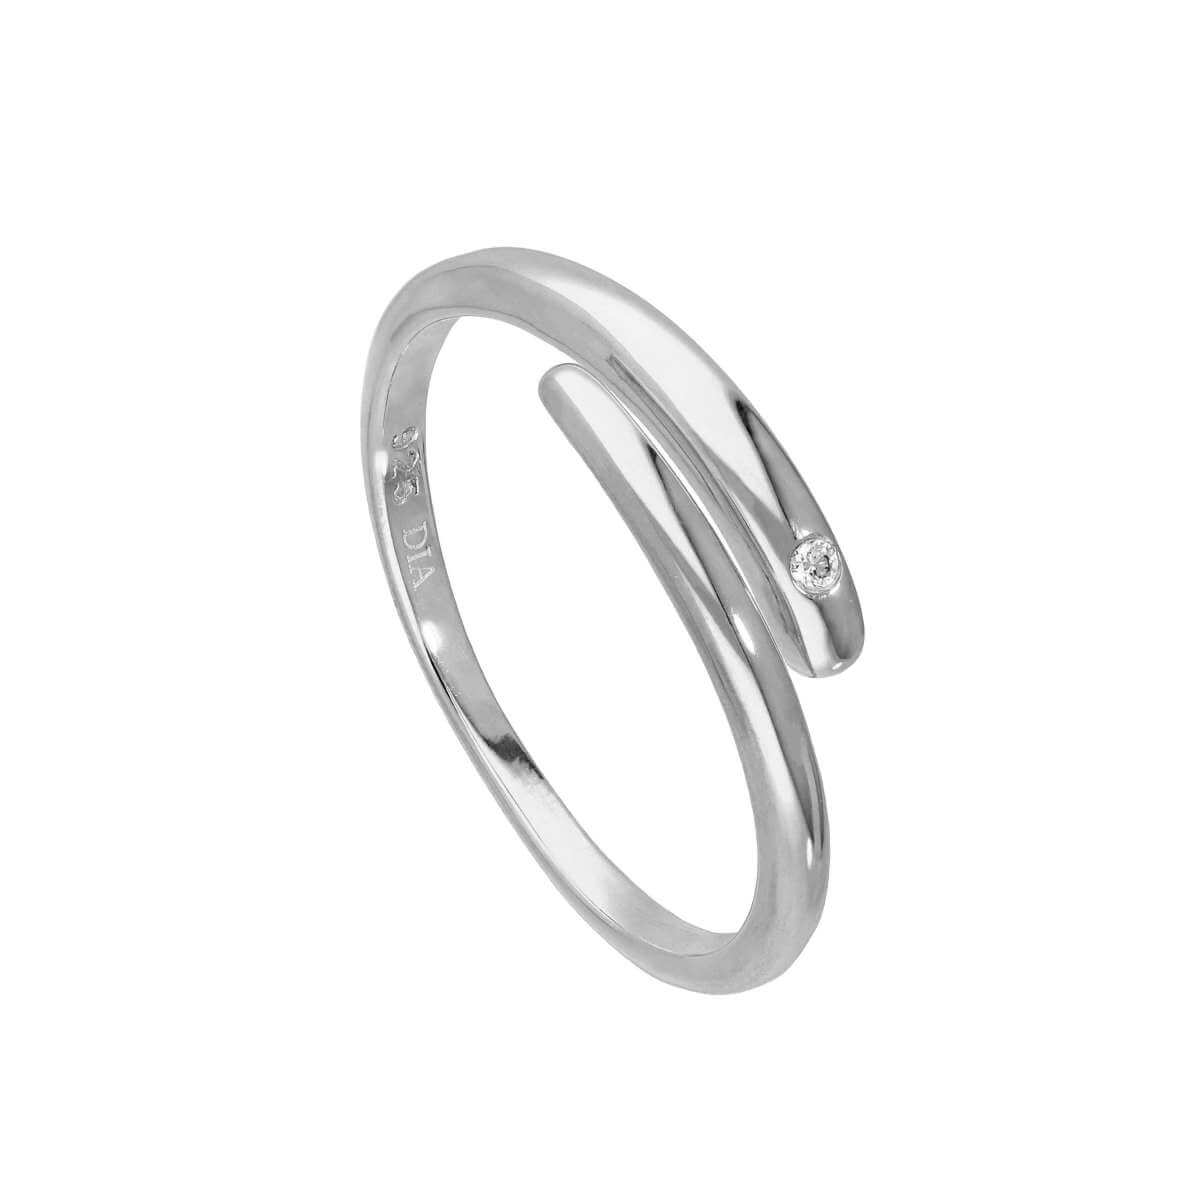 Sterling Silver & Genuine Diamond Adjustable Swirl Ring